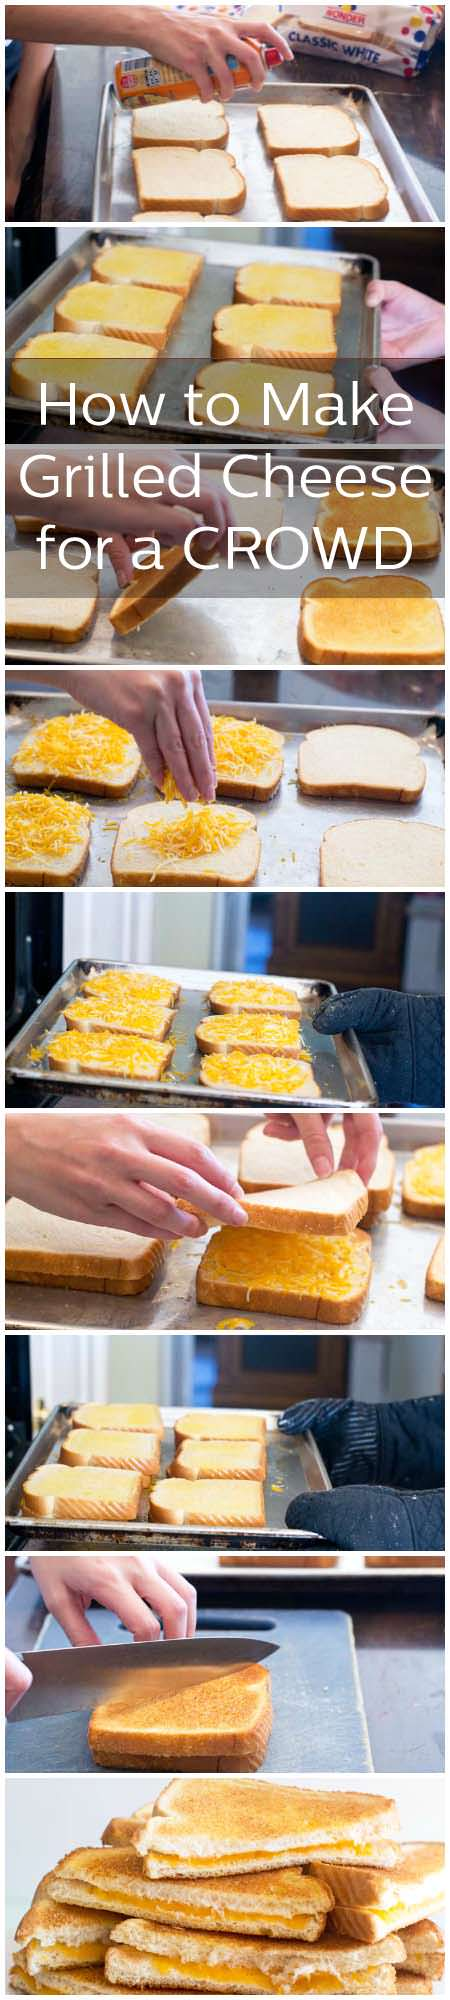 How to Make Grilled Cheese for a Crowd